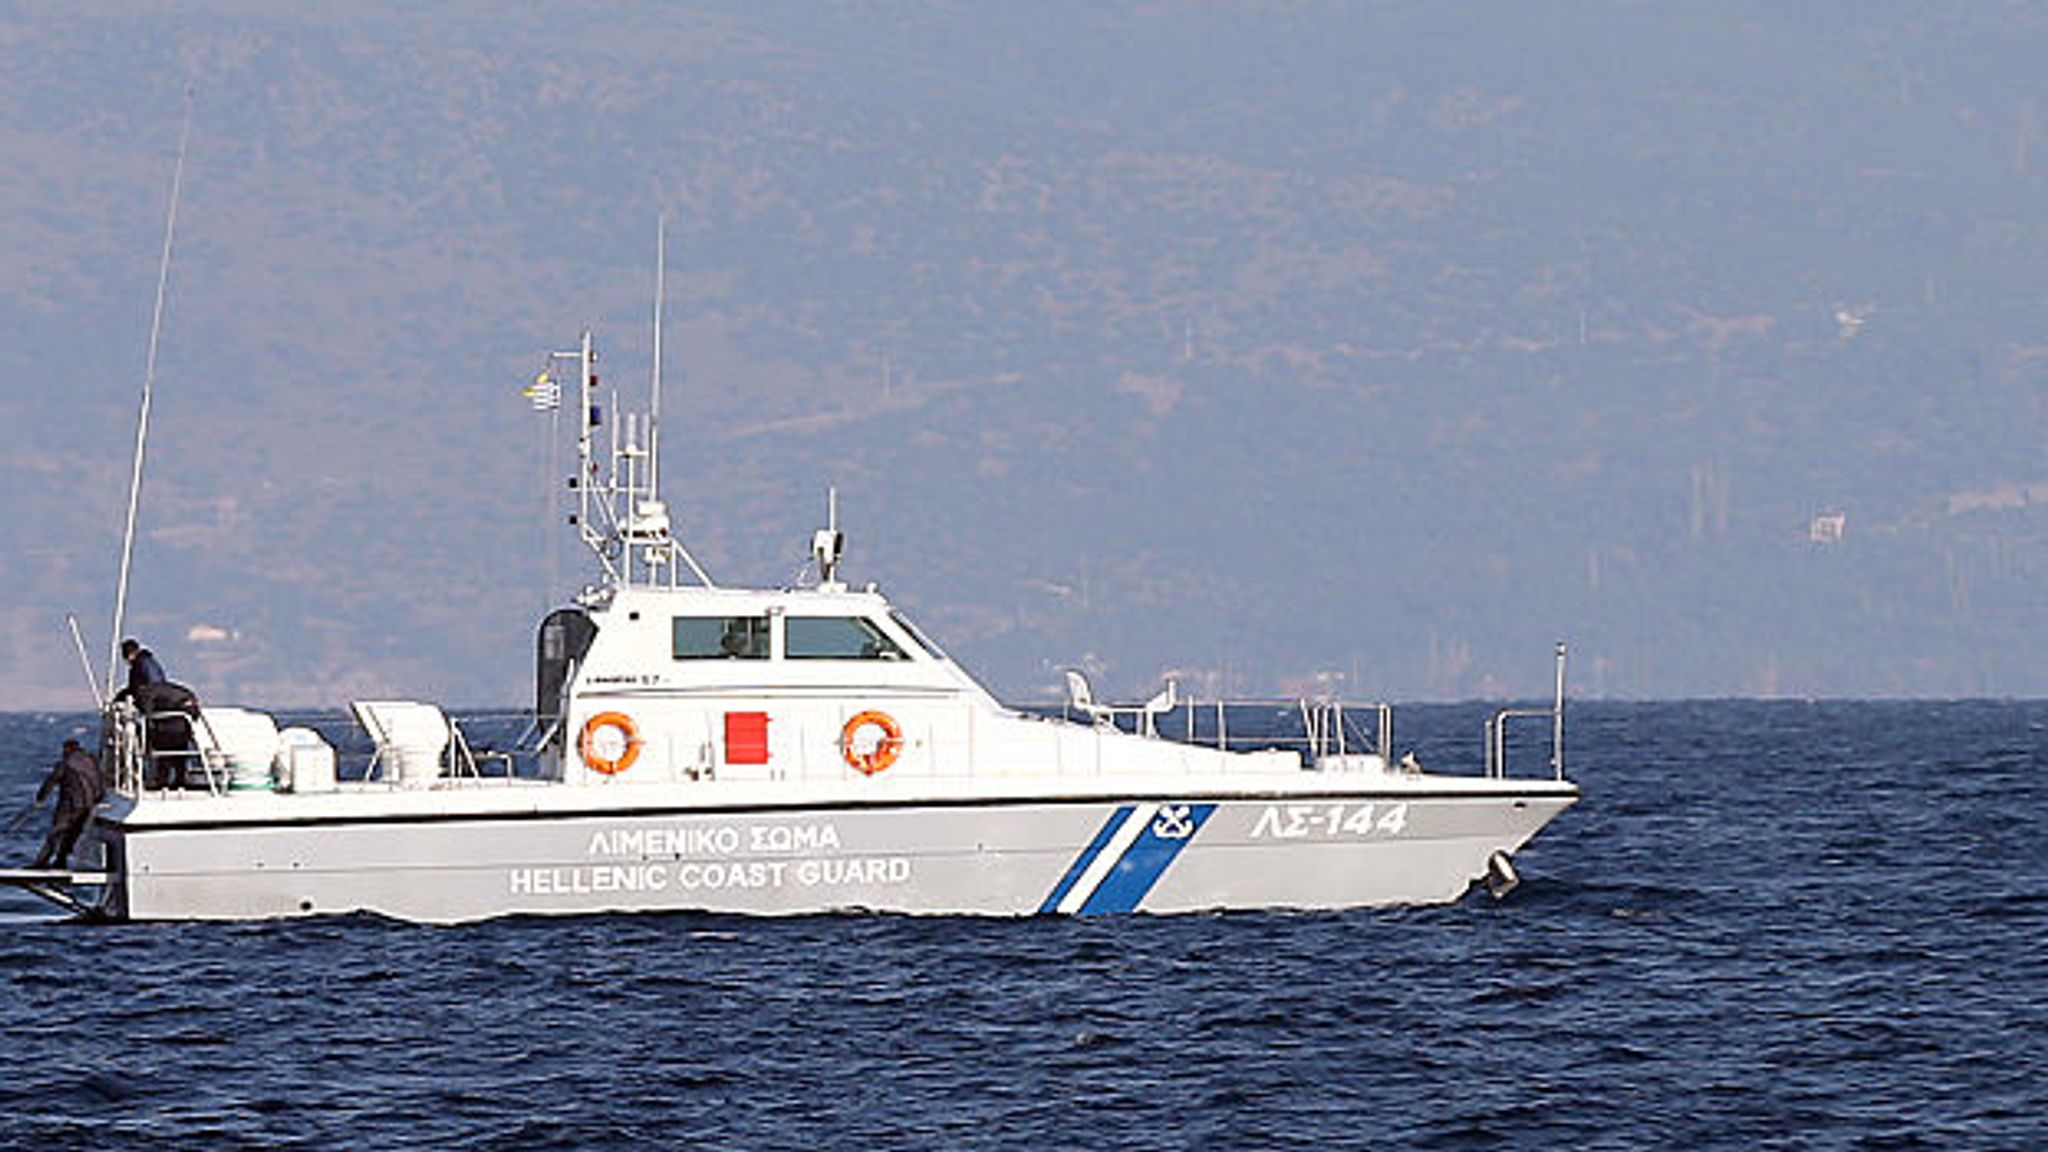 Search for survivors as 12 drown after boat sinks near Greek island of Paxos